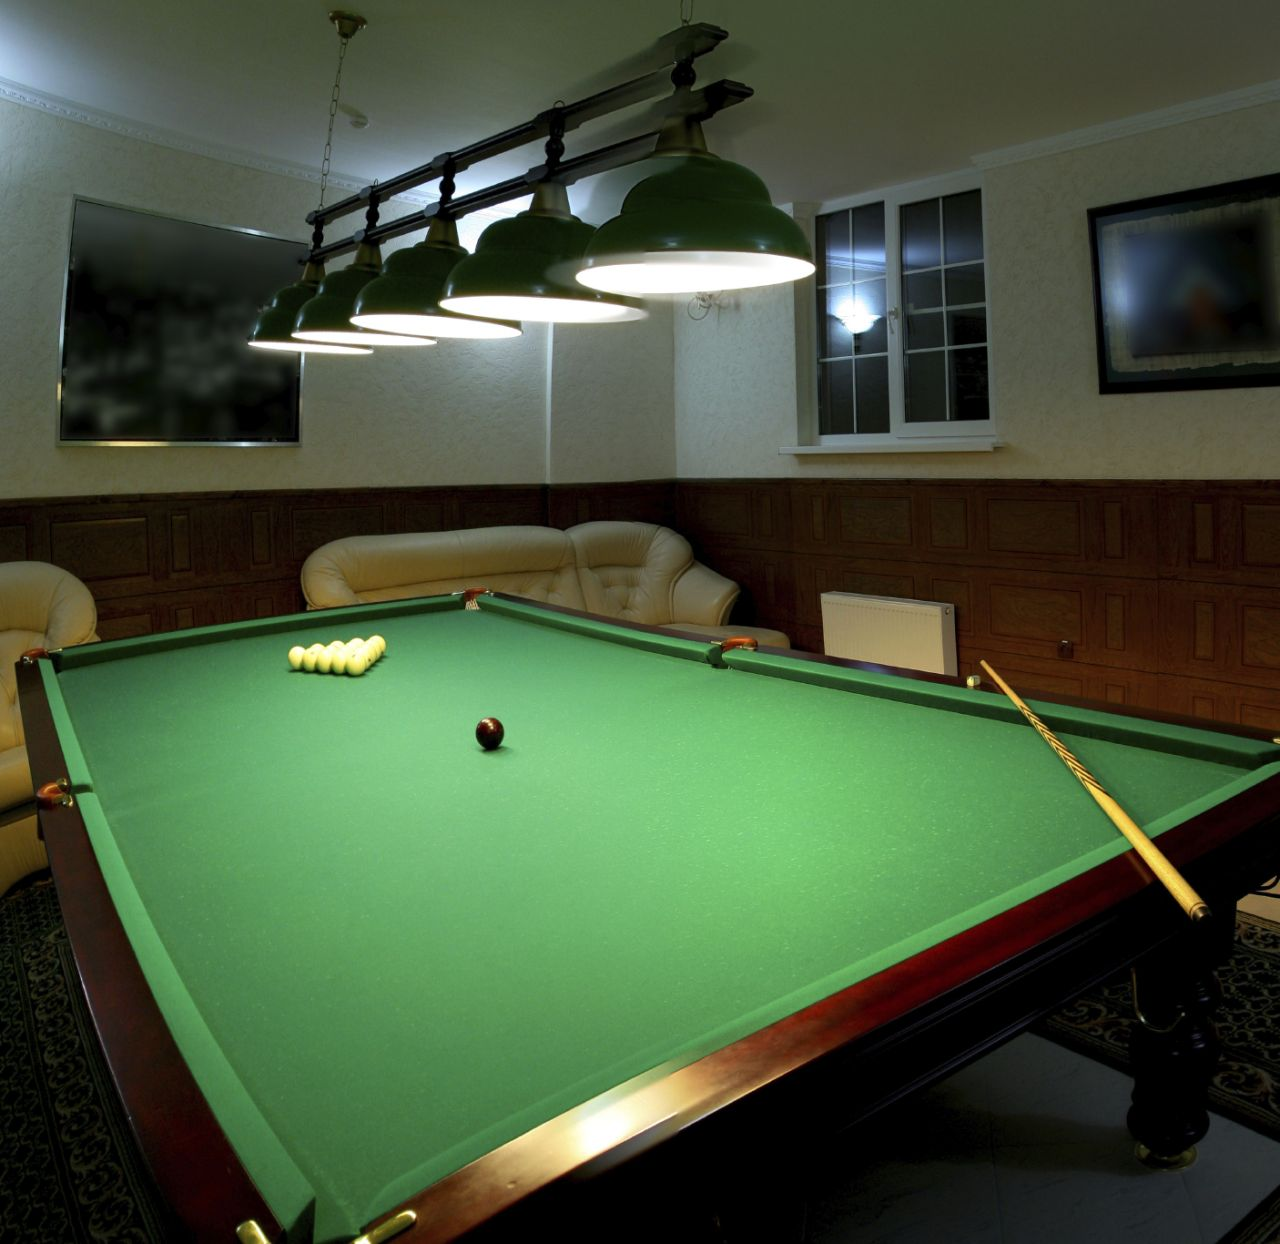 7 ways to light up your man cave